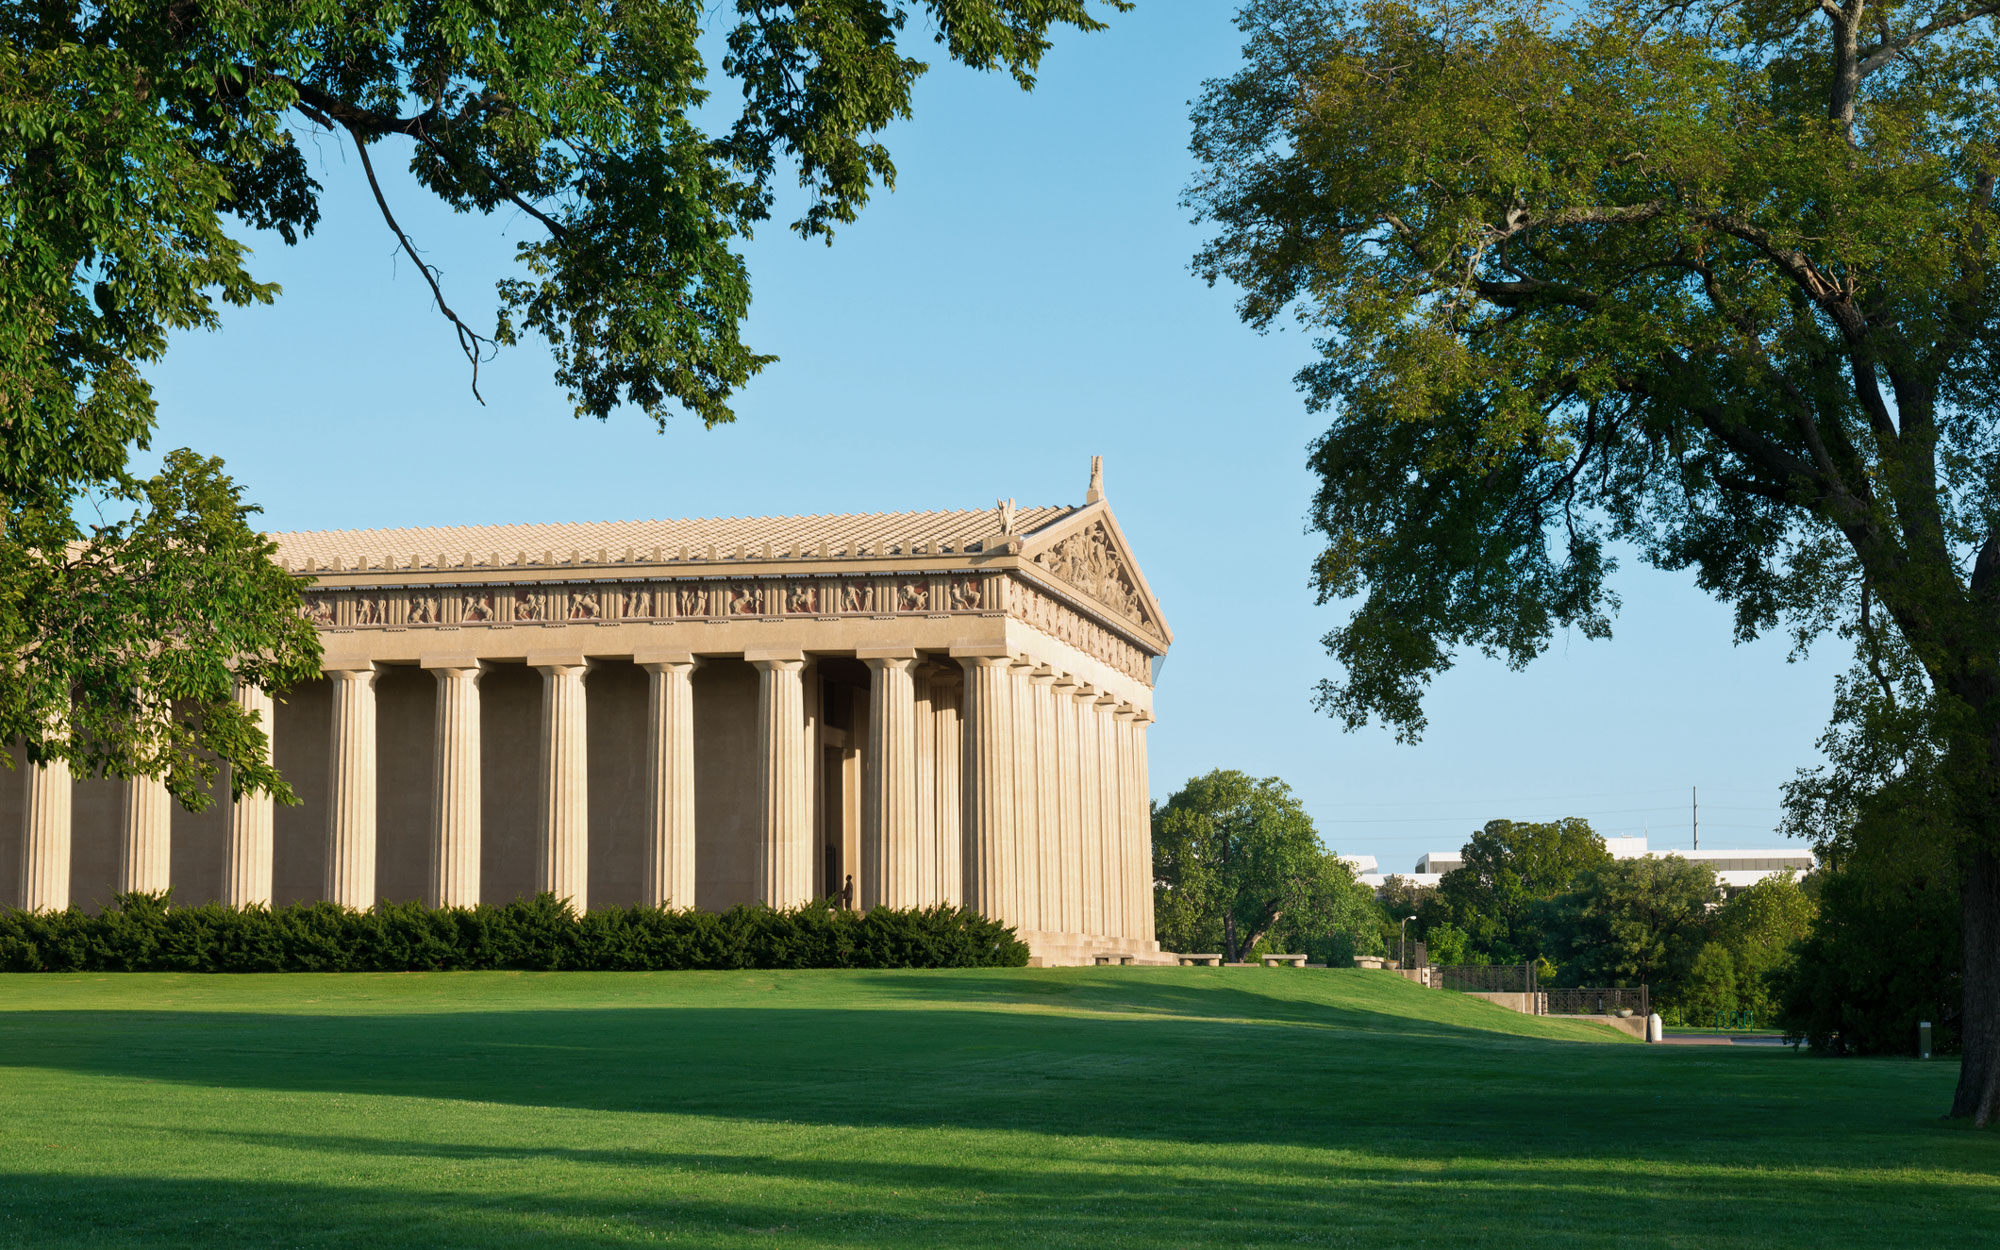 What's the Deal With Nashville's Perfect Replica of the Parthenon?